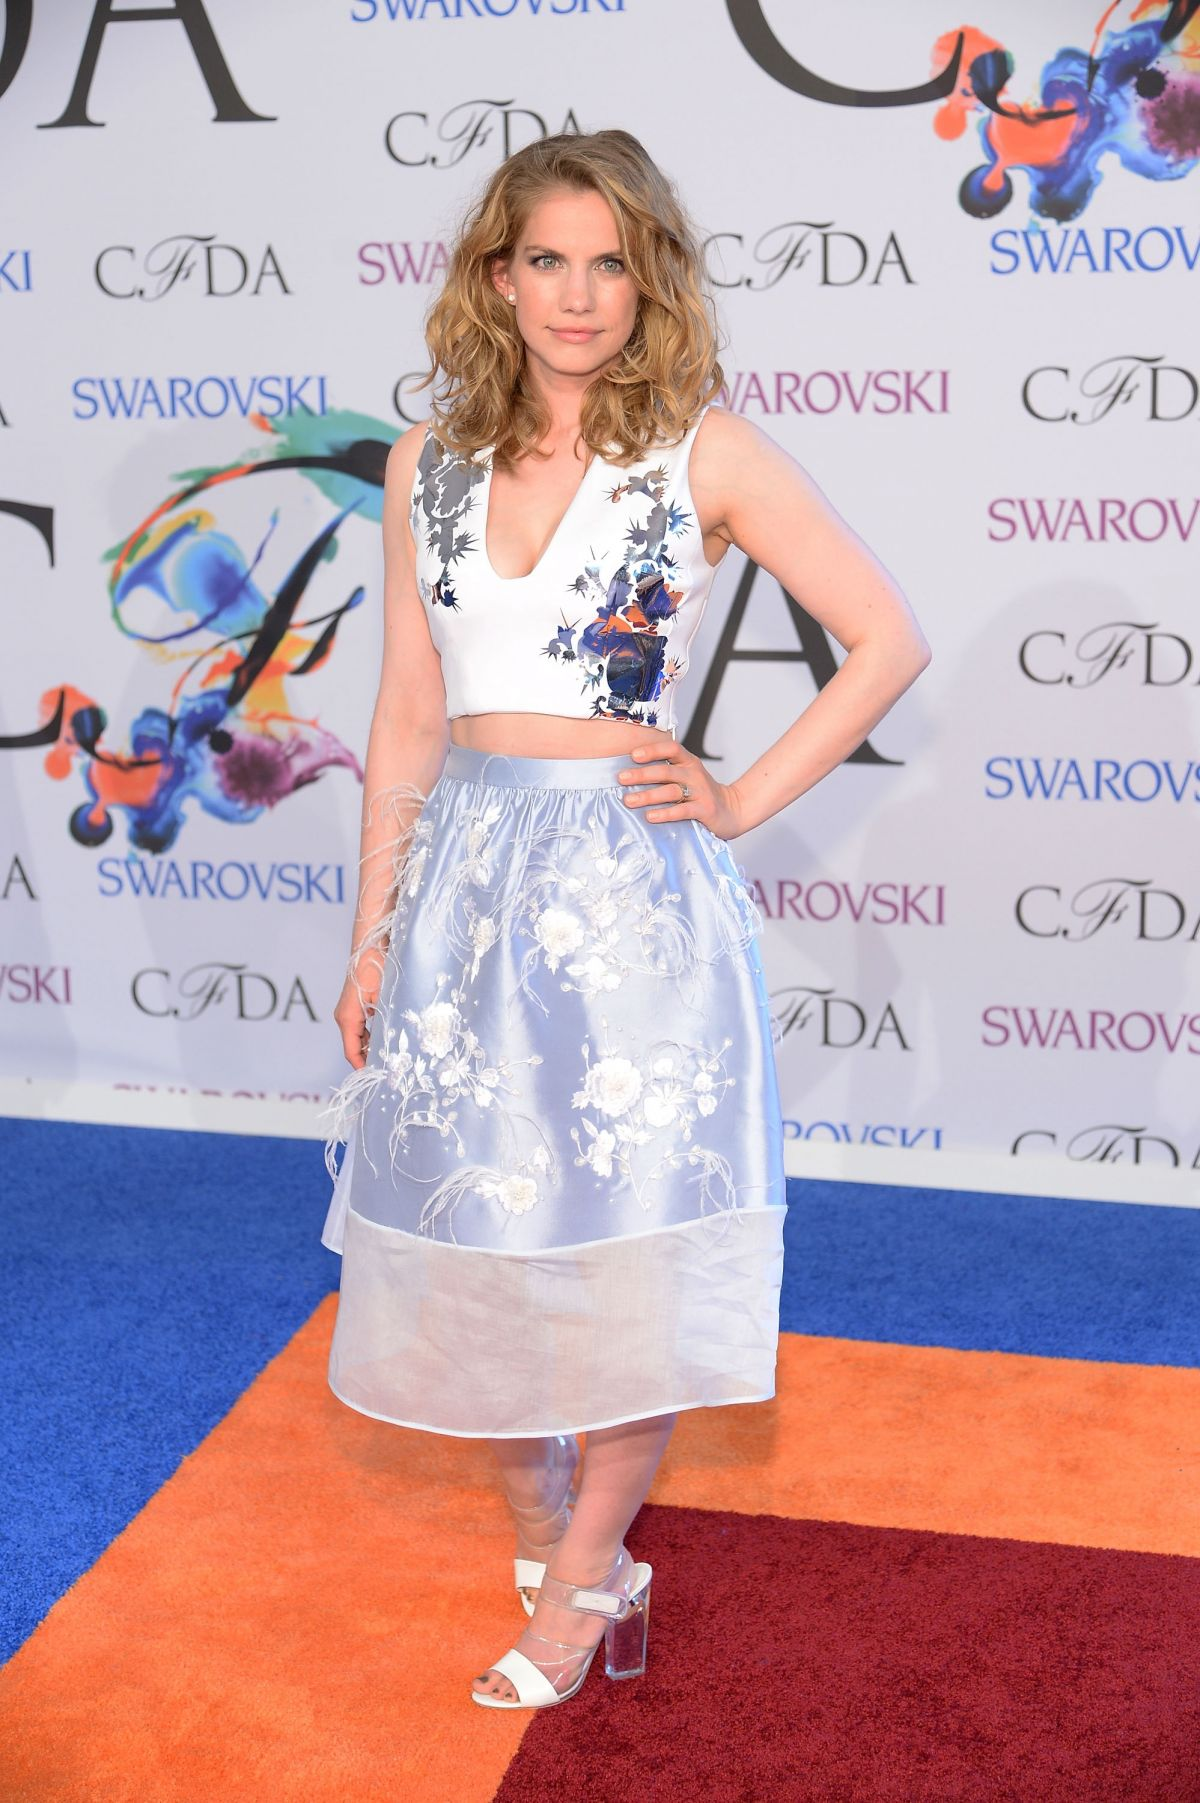 Anna Chlumsky At 2014 CFDA Fashion Awards